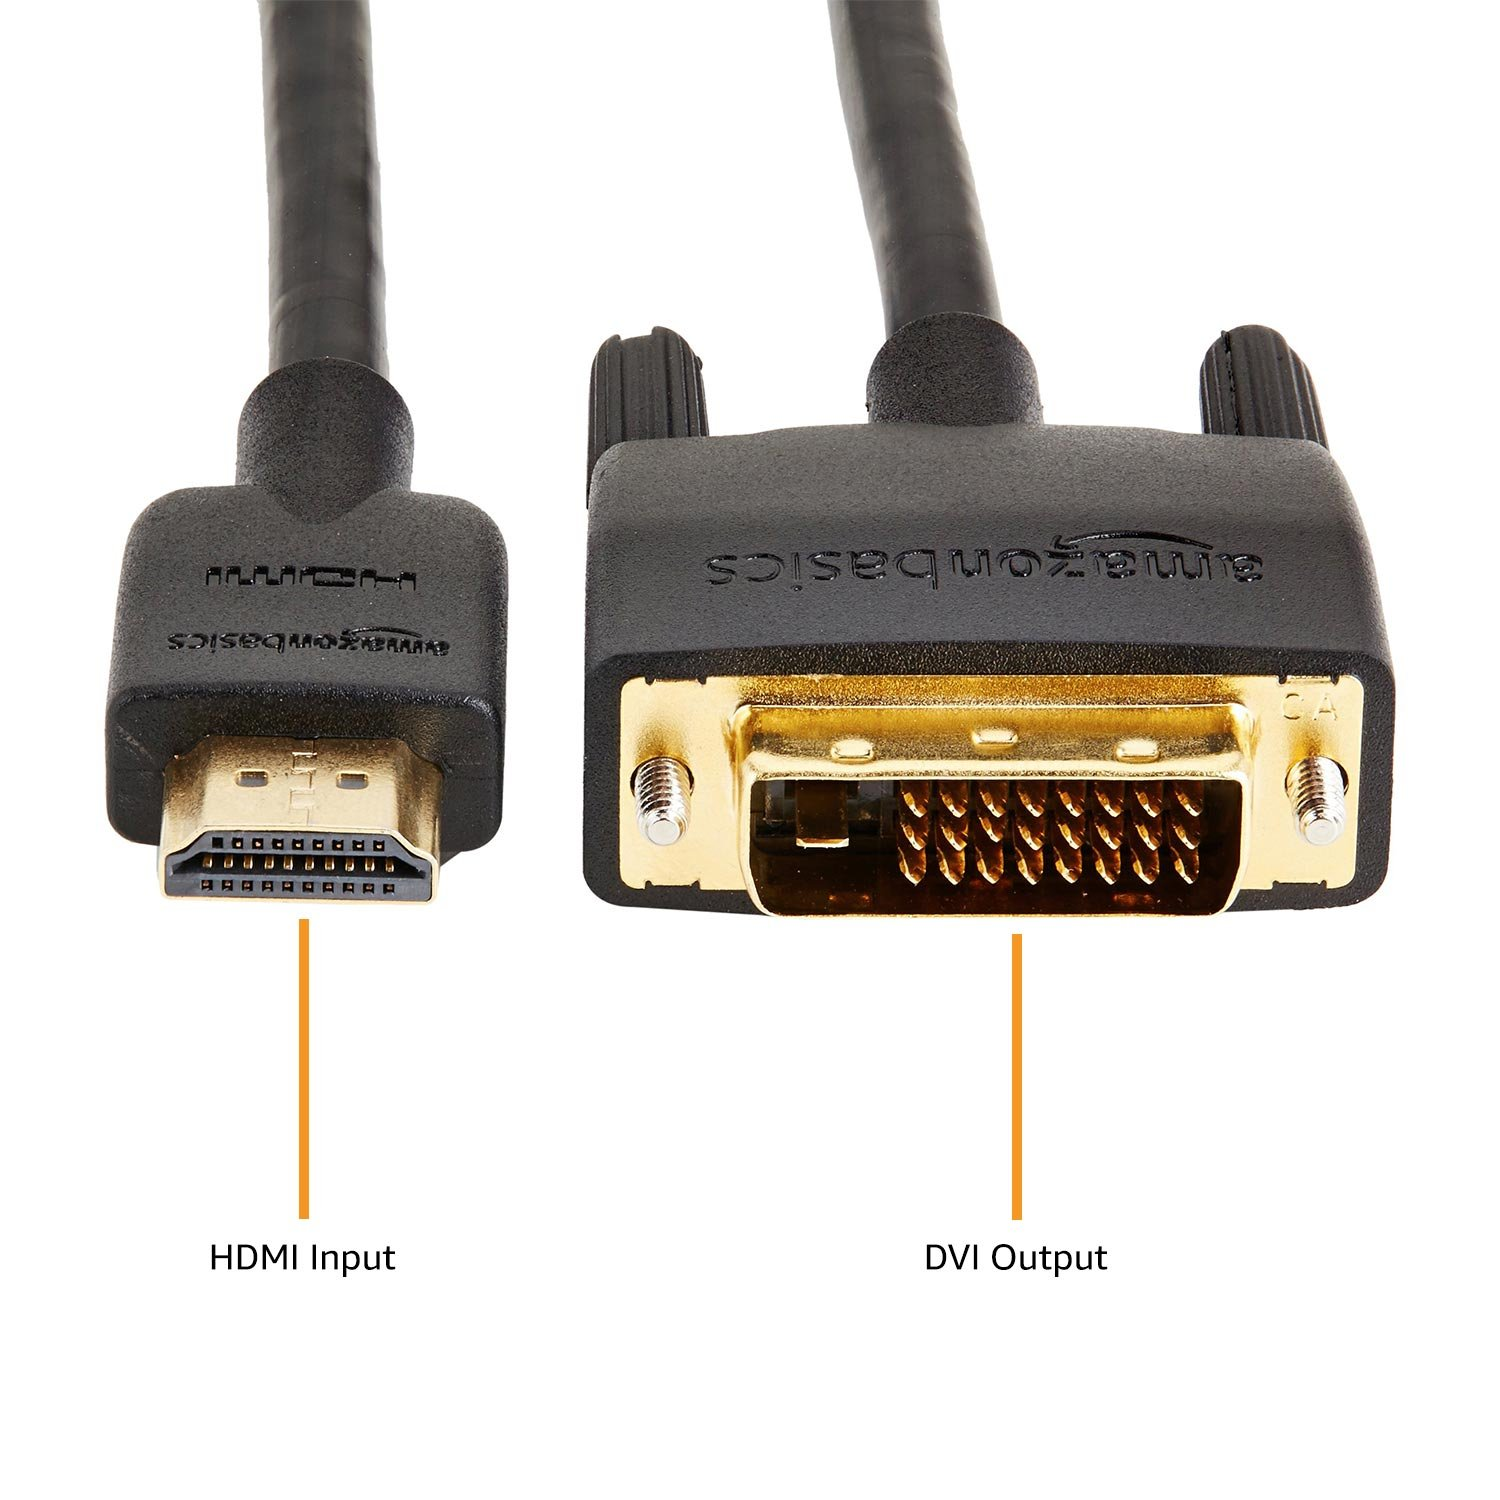 Amazon Basics HDMI to DVI Adapter Cable, Black, 6 Feet, 1-Pack